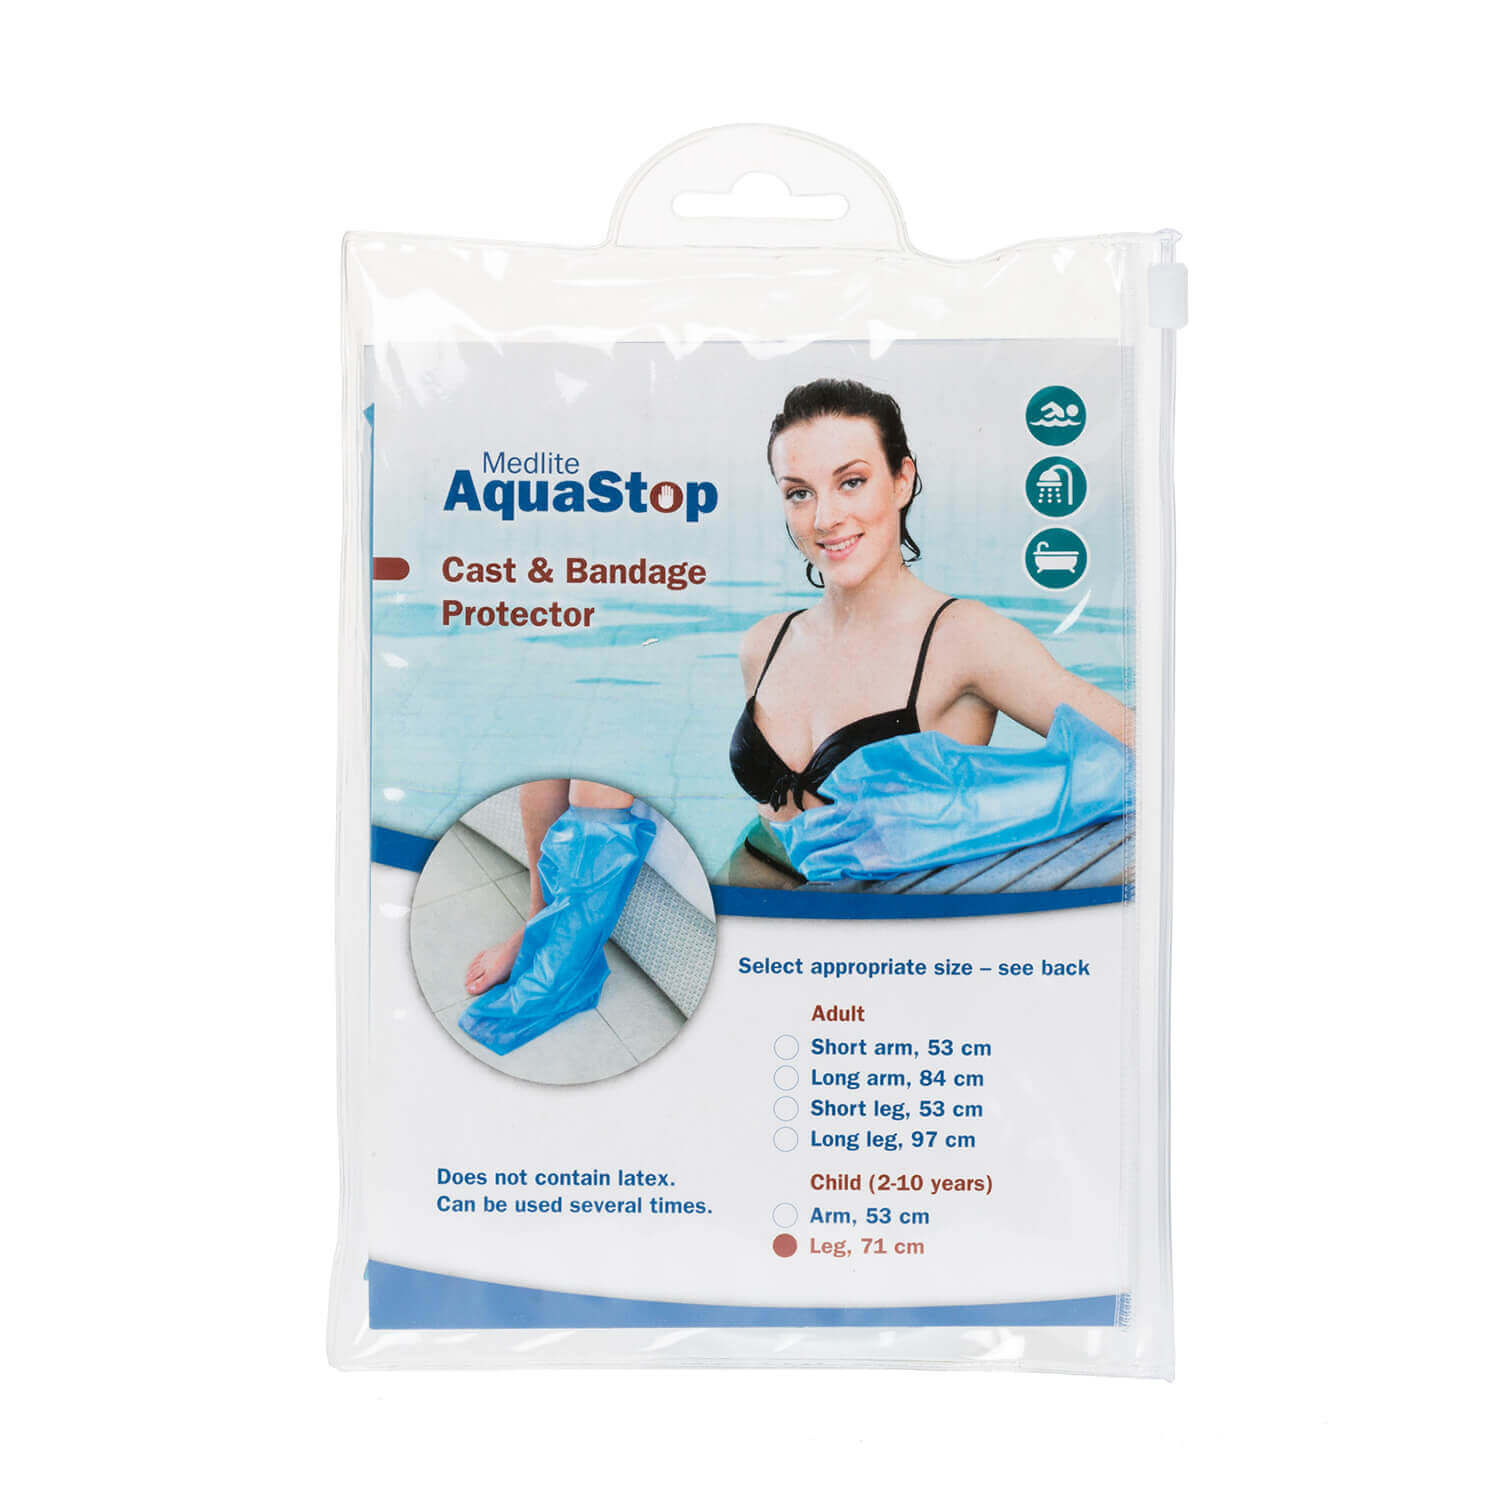 Aquastop Child Size Child Leg 71cm